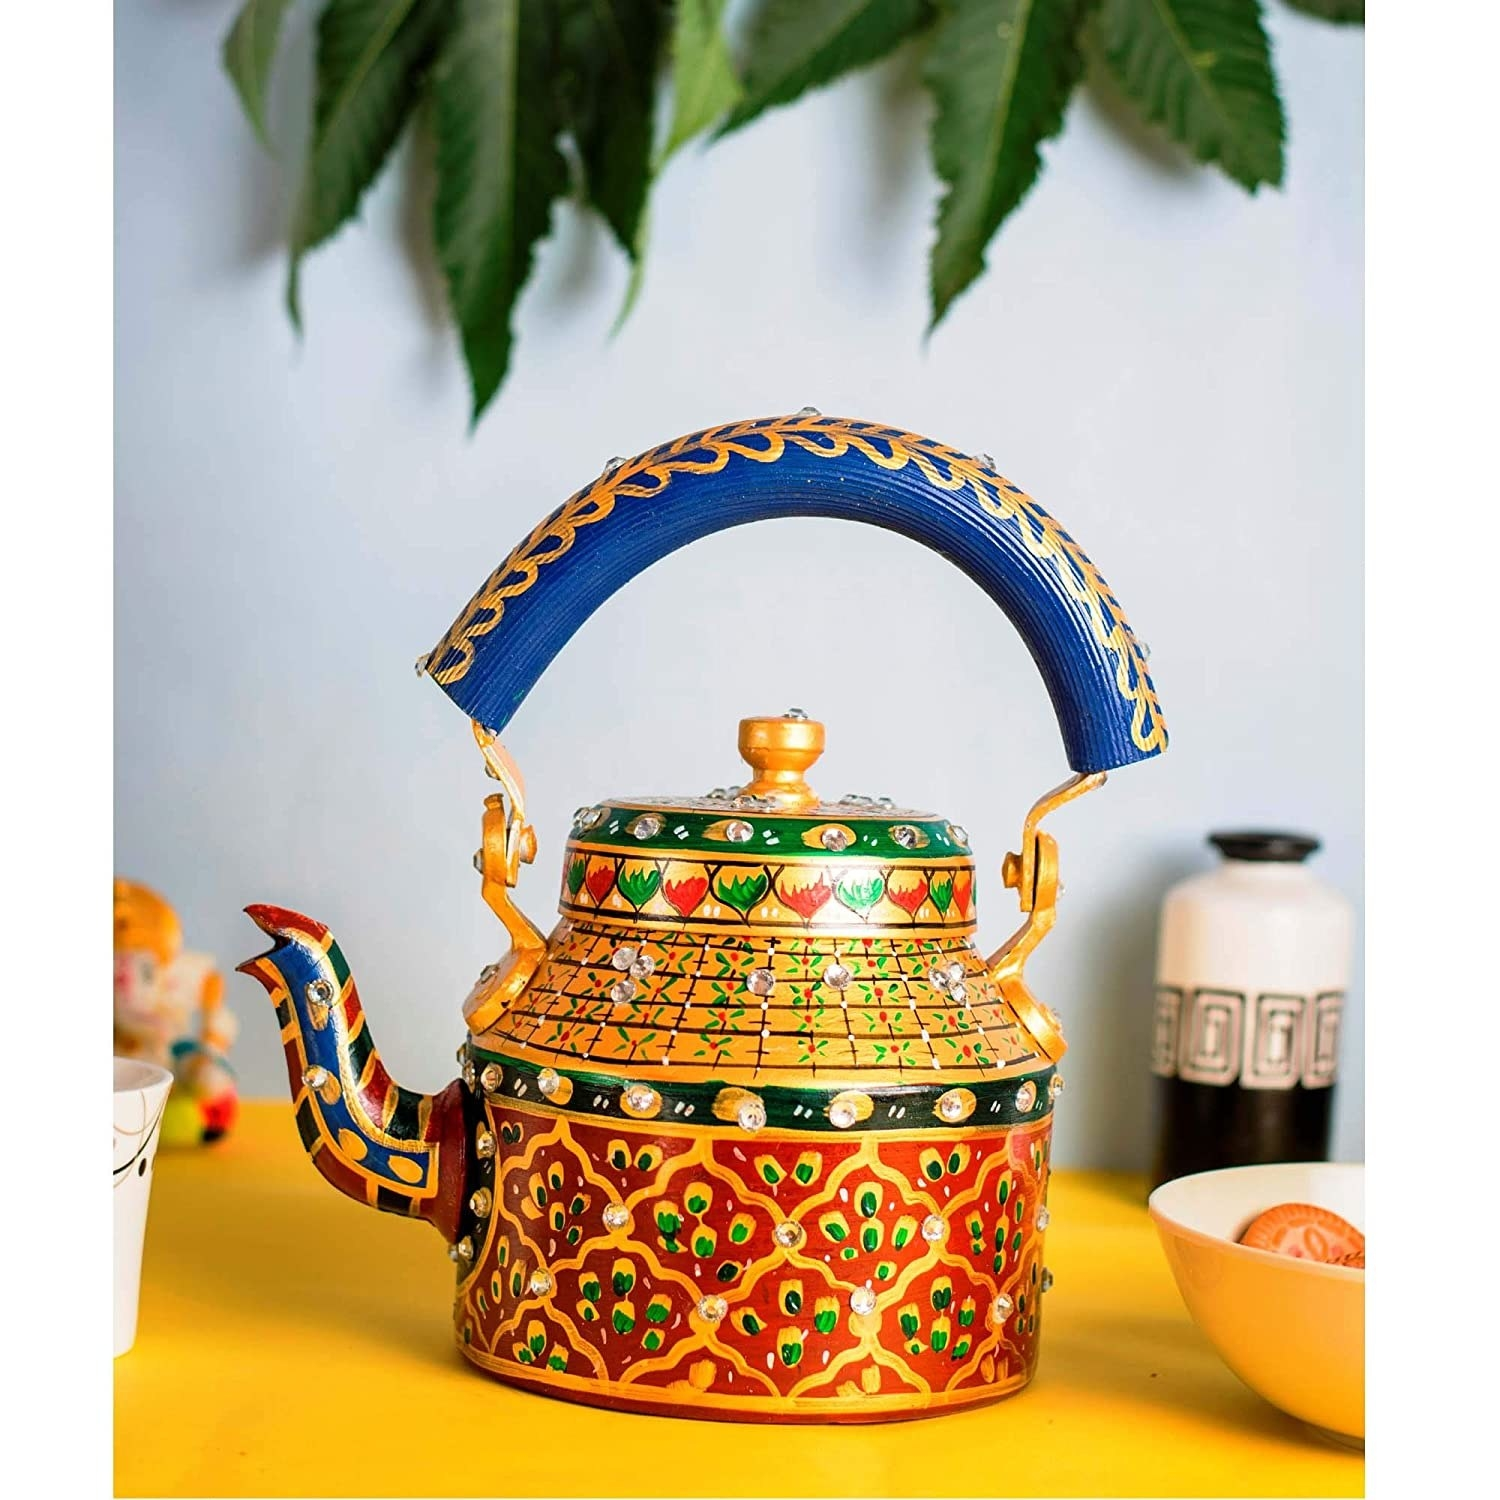 A hand-painted kettle on a table